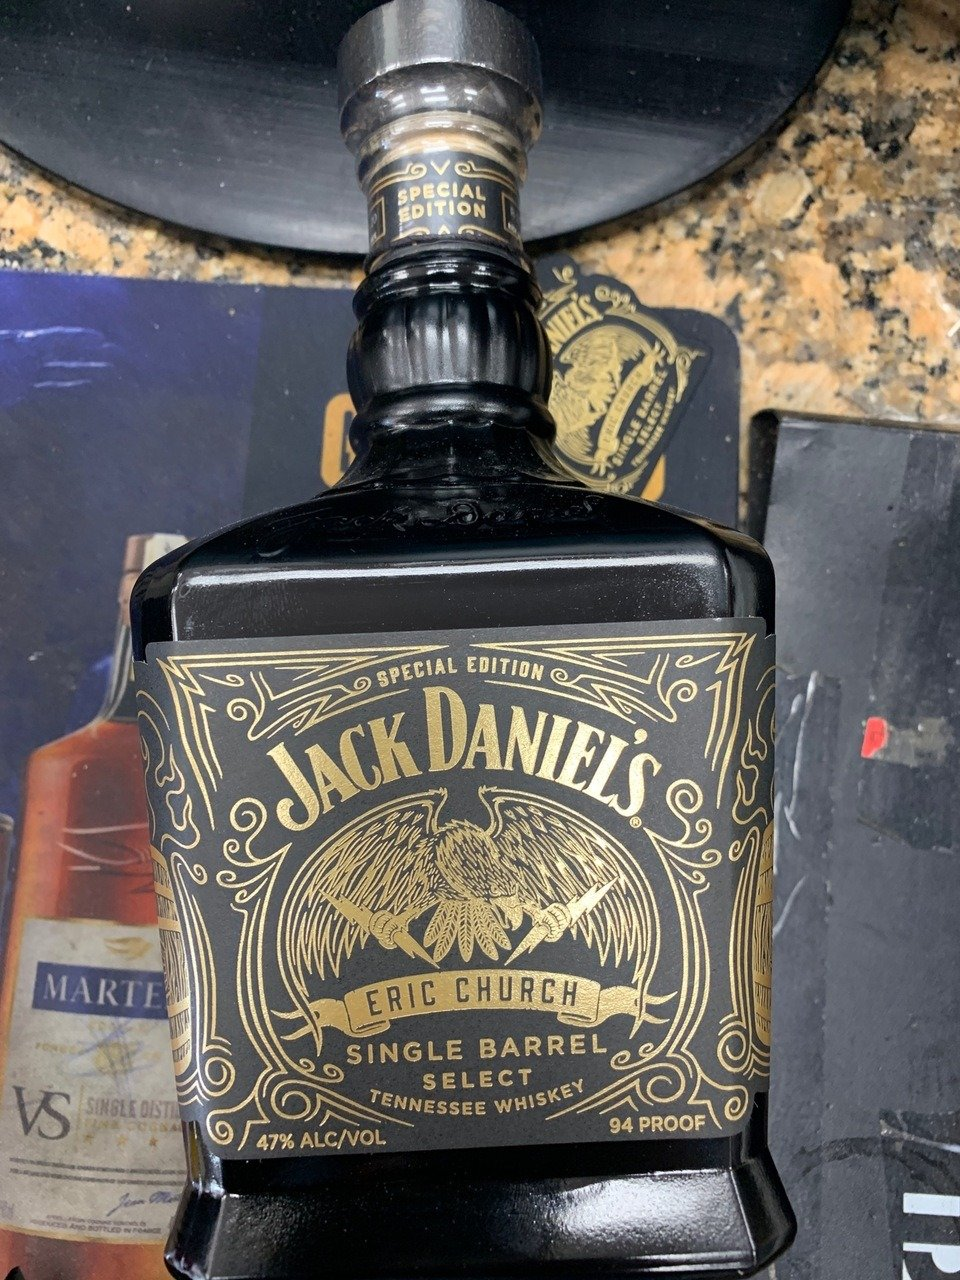 Limited Bottle Single Barrel Select Tennessee Whiskey (750ml)